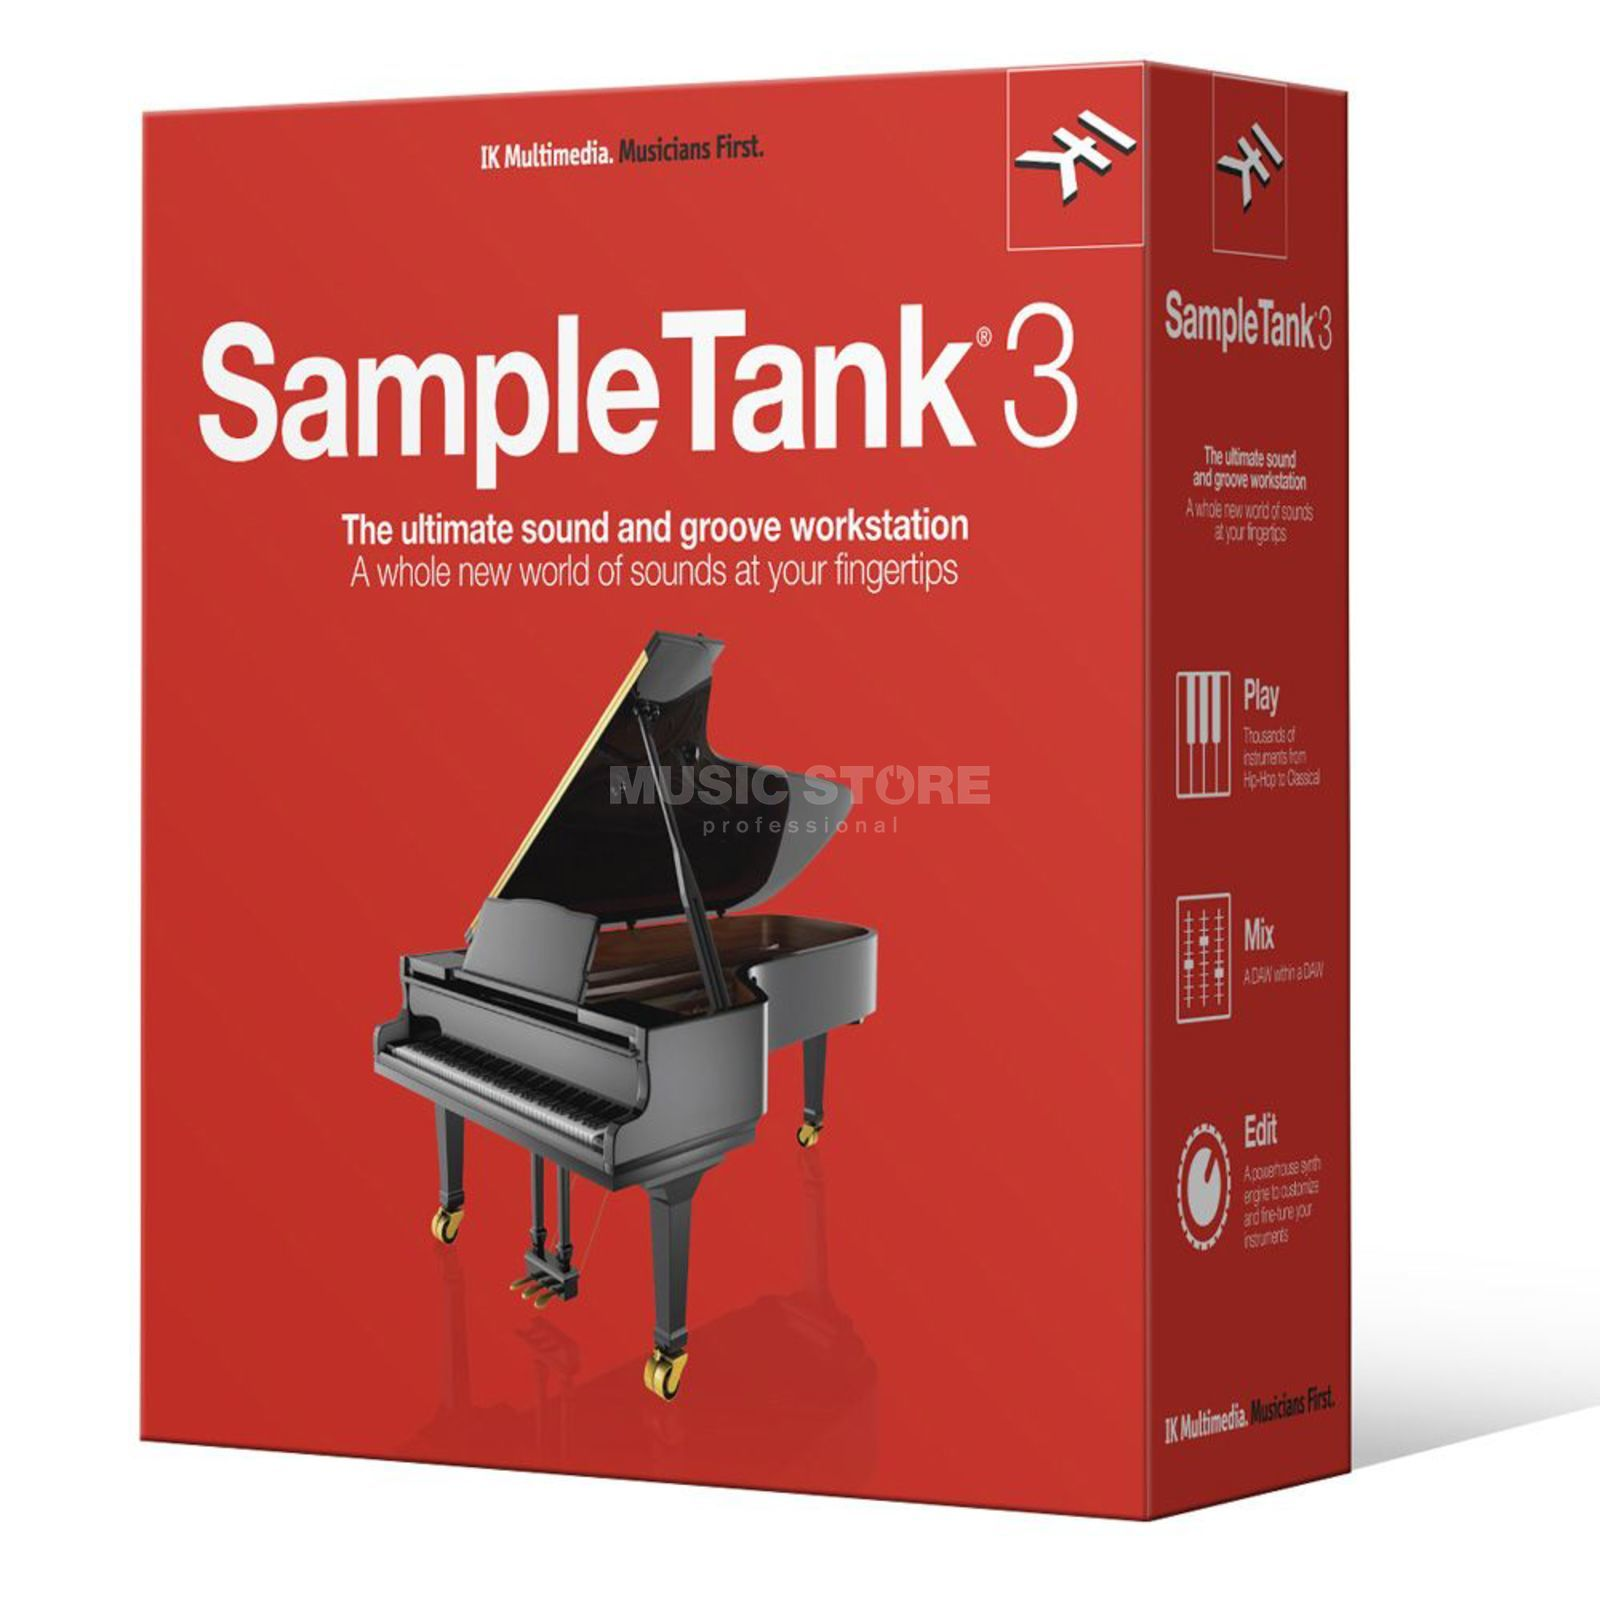 IK Multimedia SampleTank 3 33 GB Sounds, boxed Produktbillede